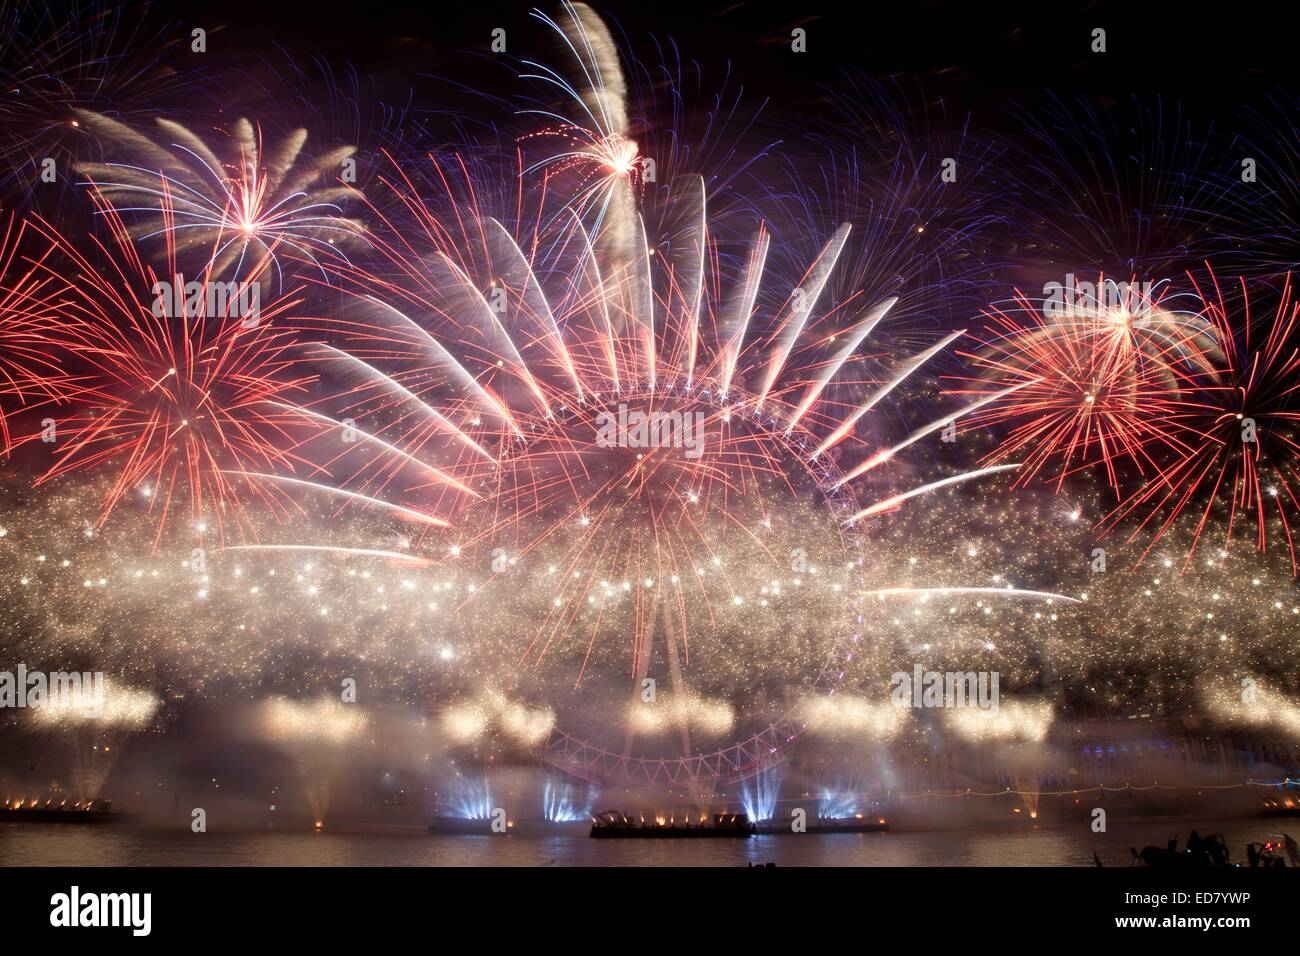 London, UK. 1st January, 2015. London welcomed in 2015 with a large fireworks display. London's NYE 2014 fireworks - Stock Image